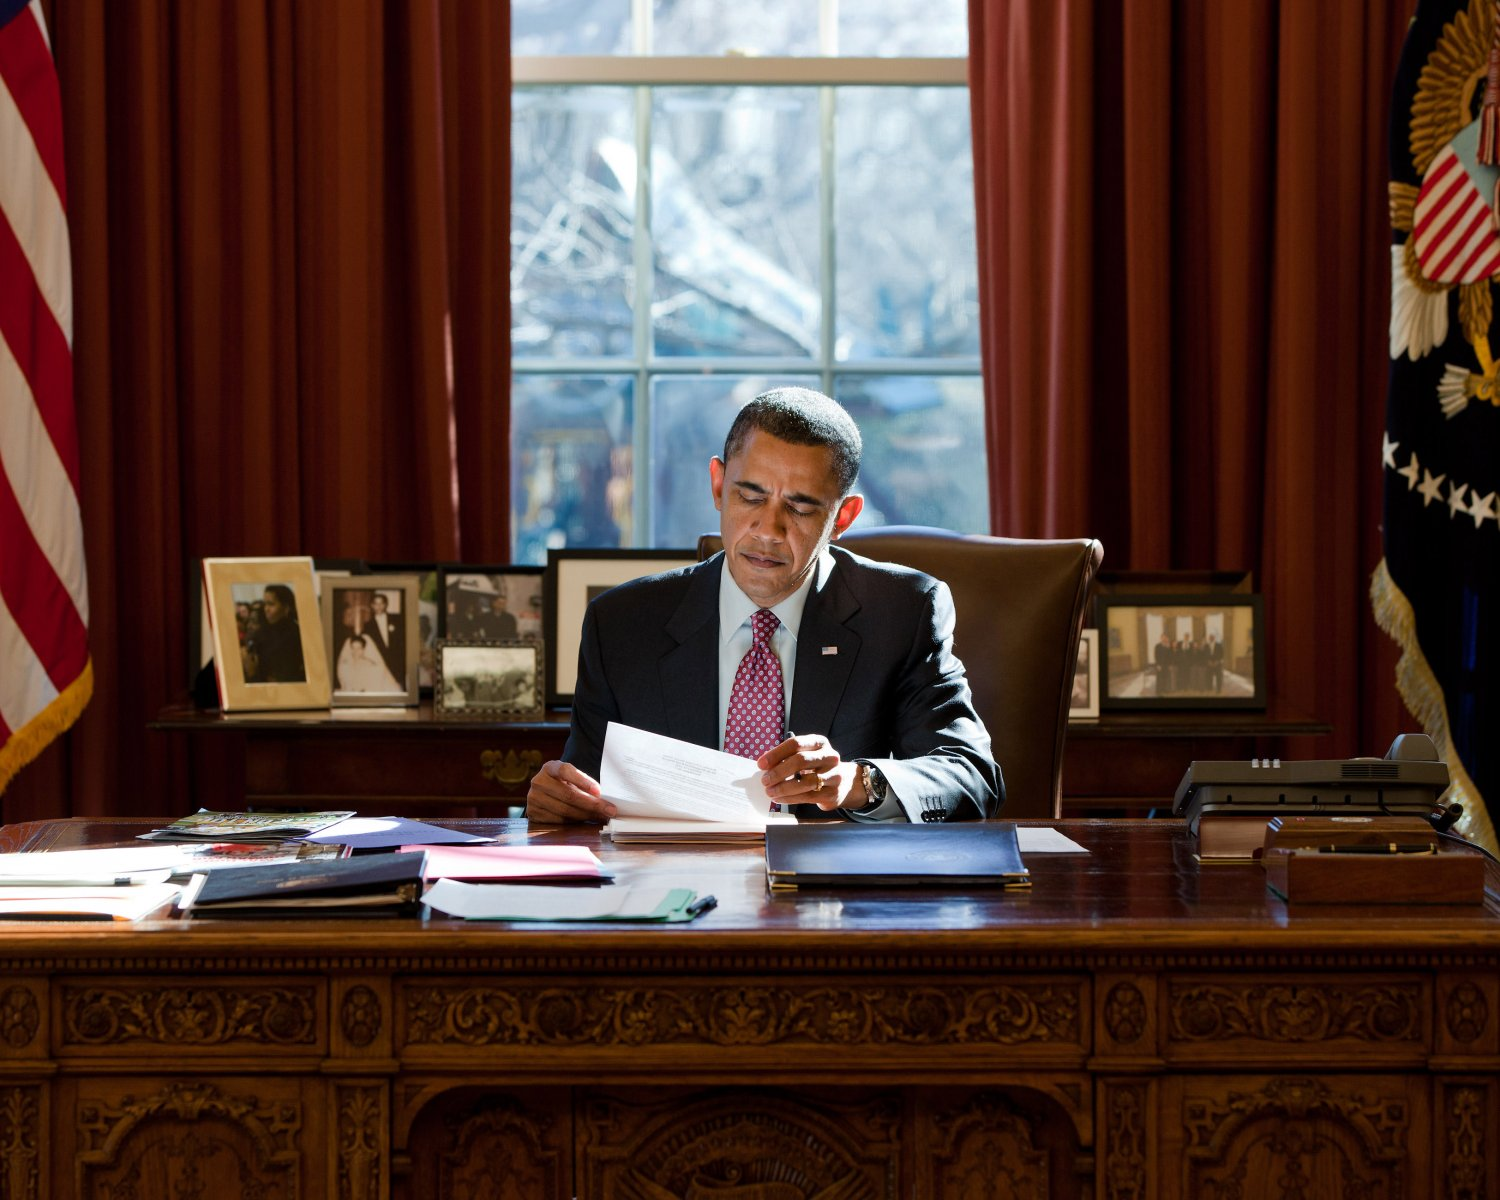 PRESIDENT BARACK OBAMA AT RESOLUTE DESK IN THE OVAL OFFICE 8X10